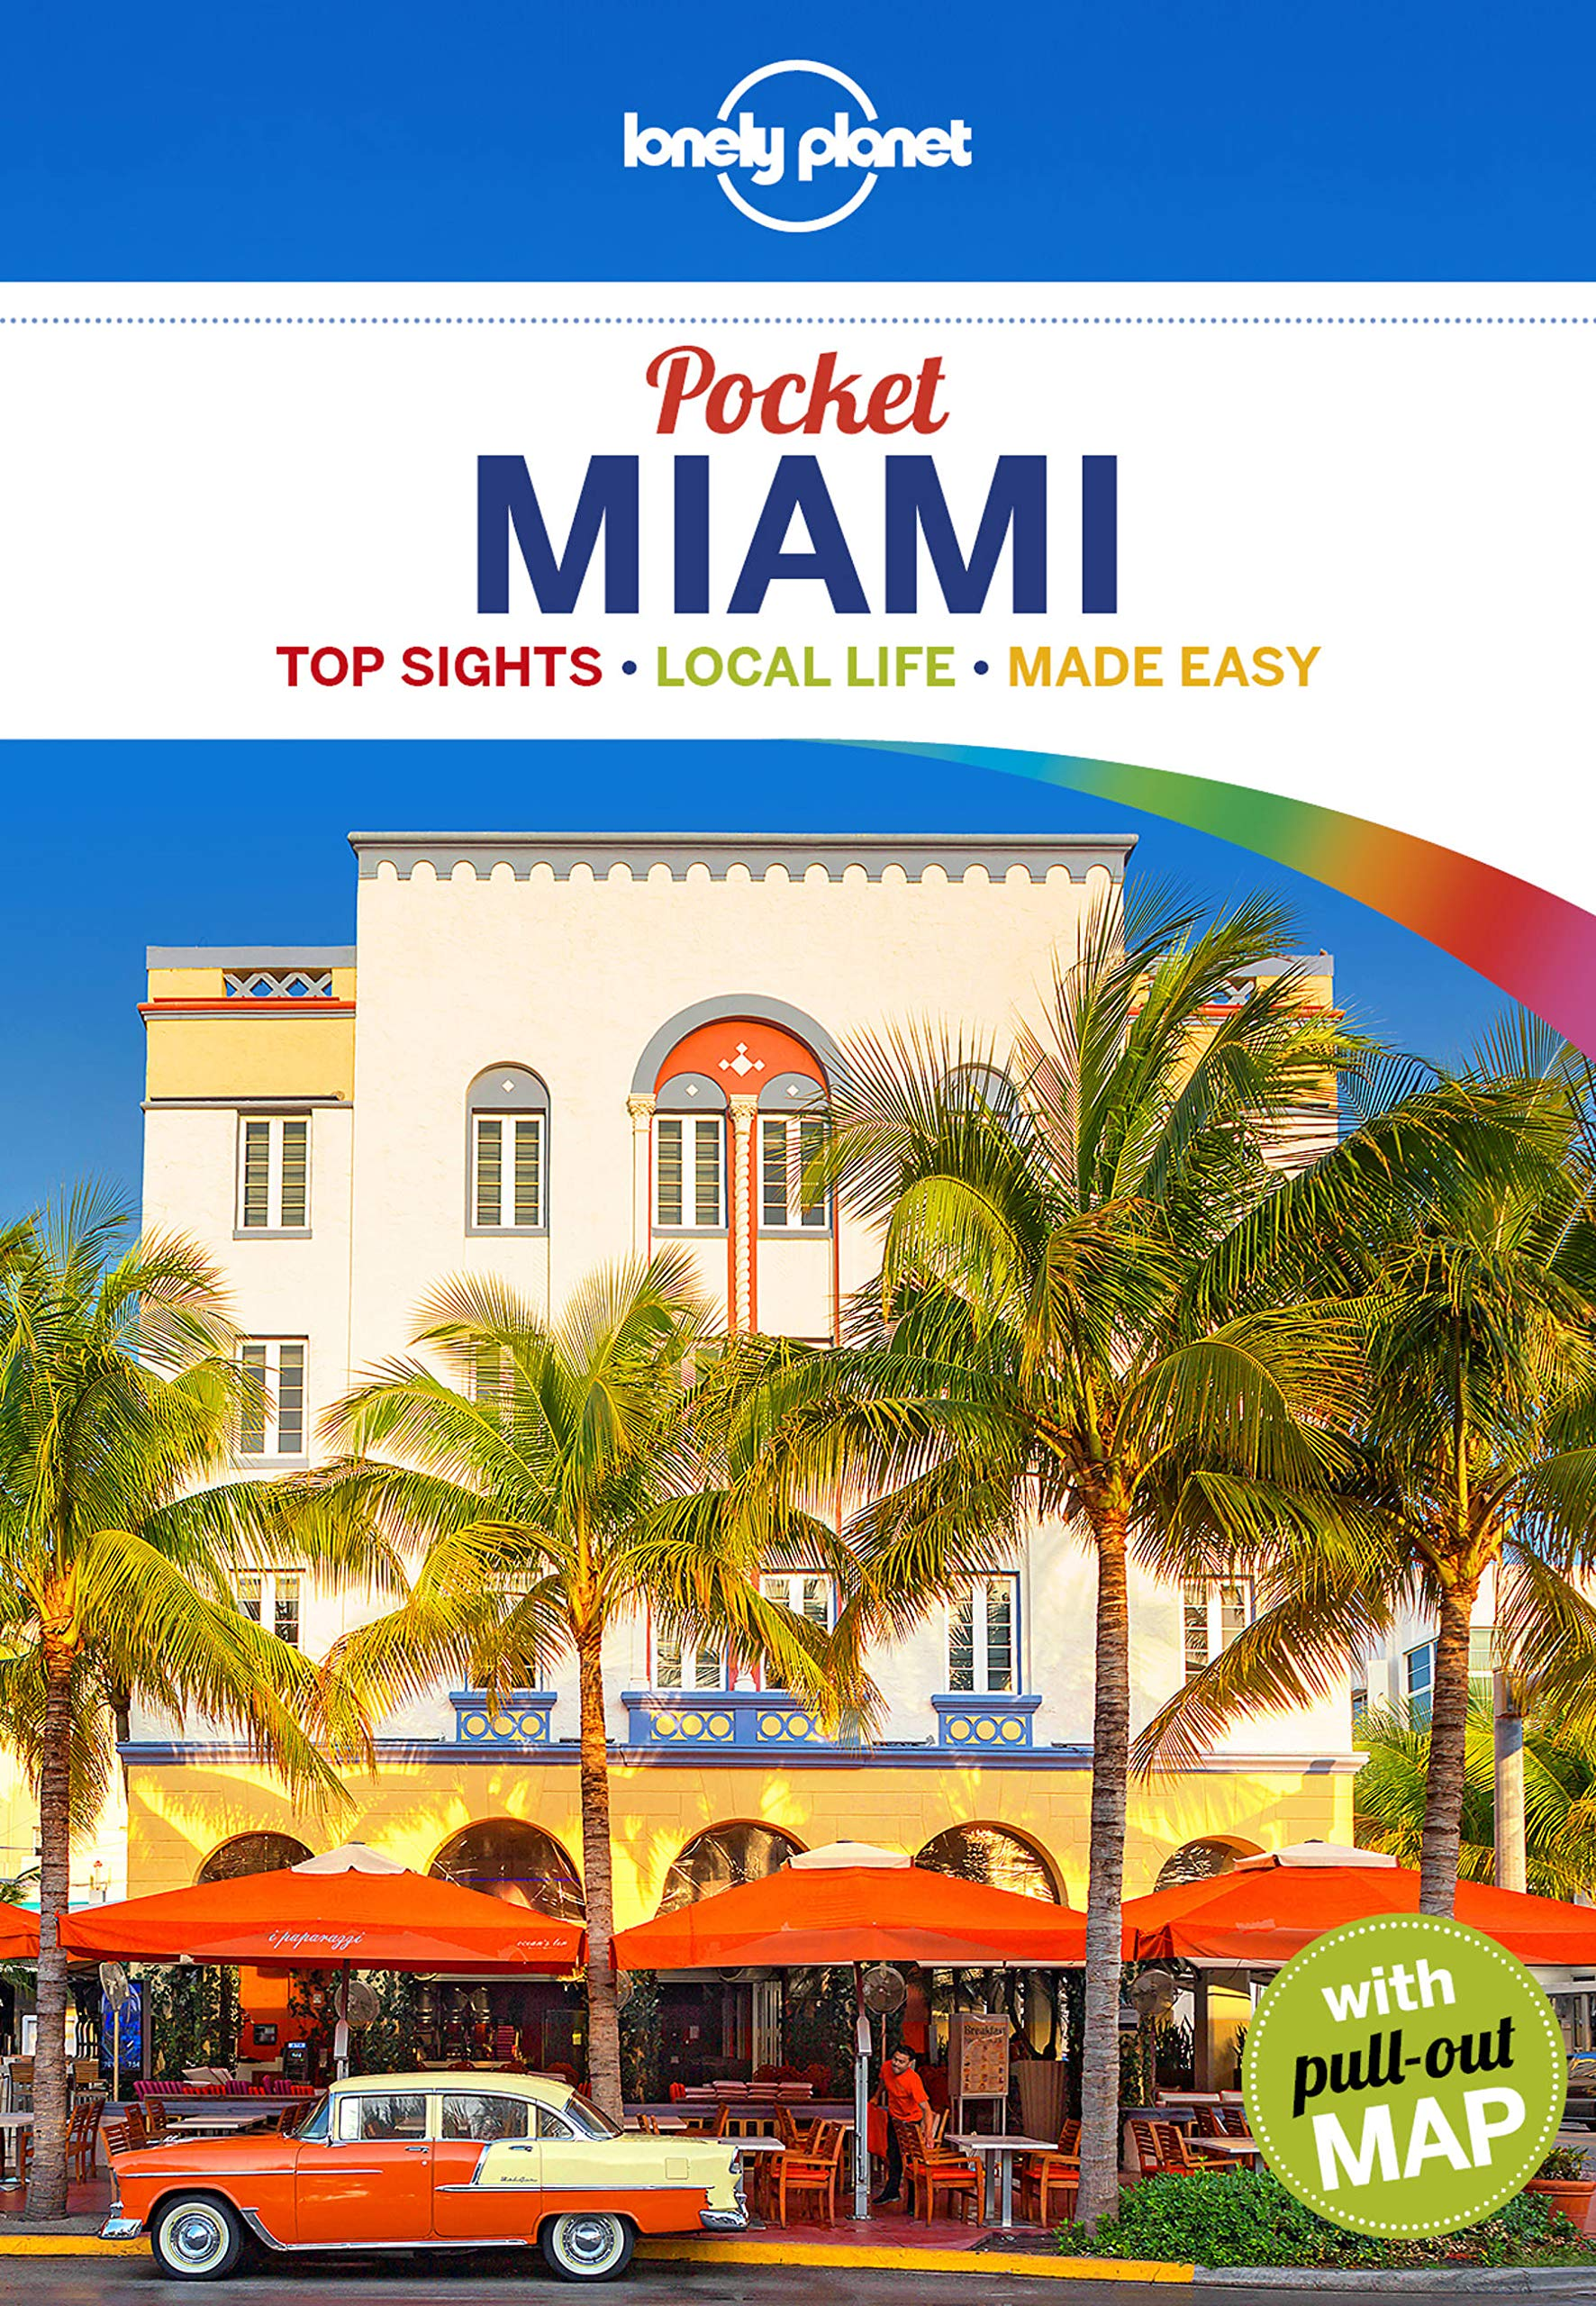 Image for Lonely Planet Pocket Miami